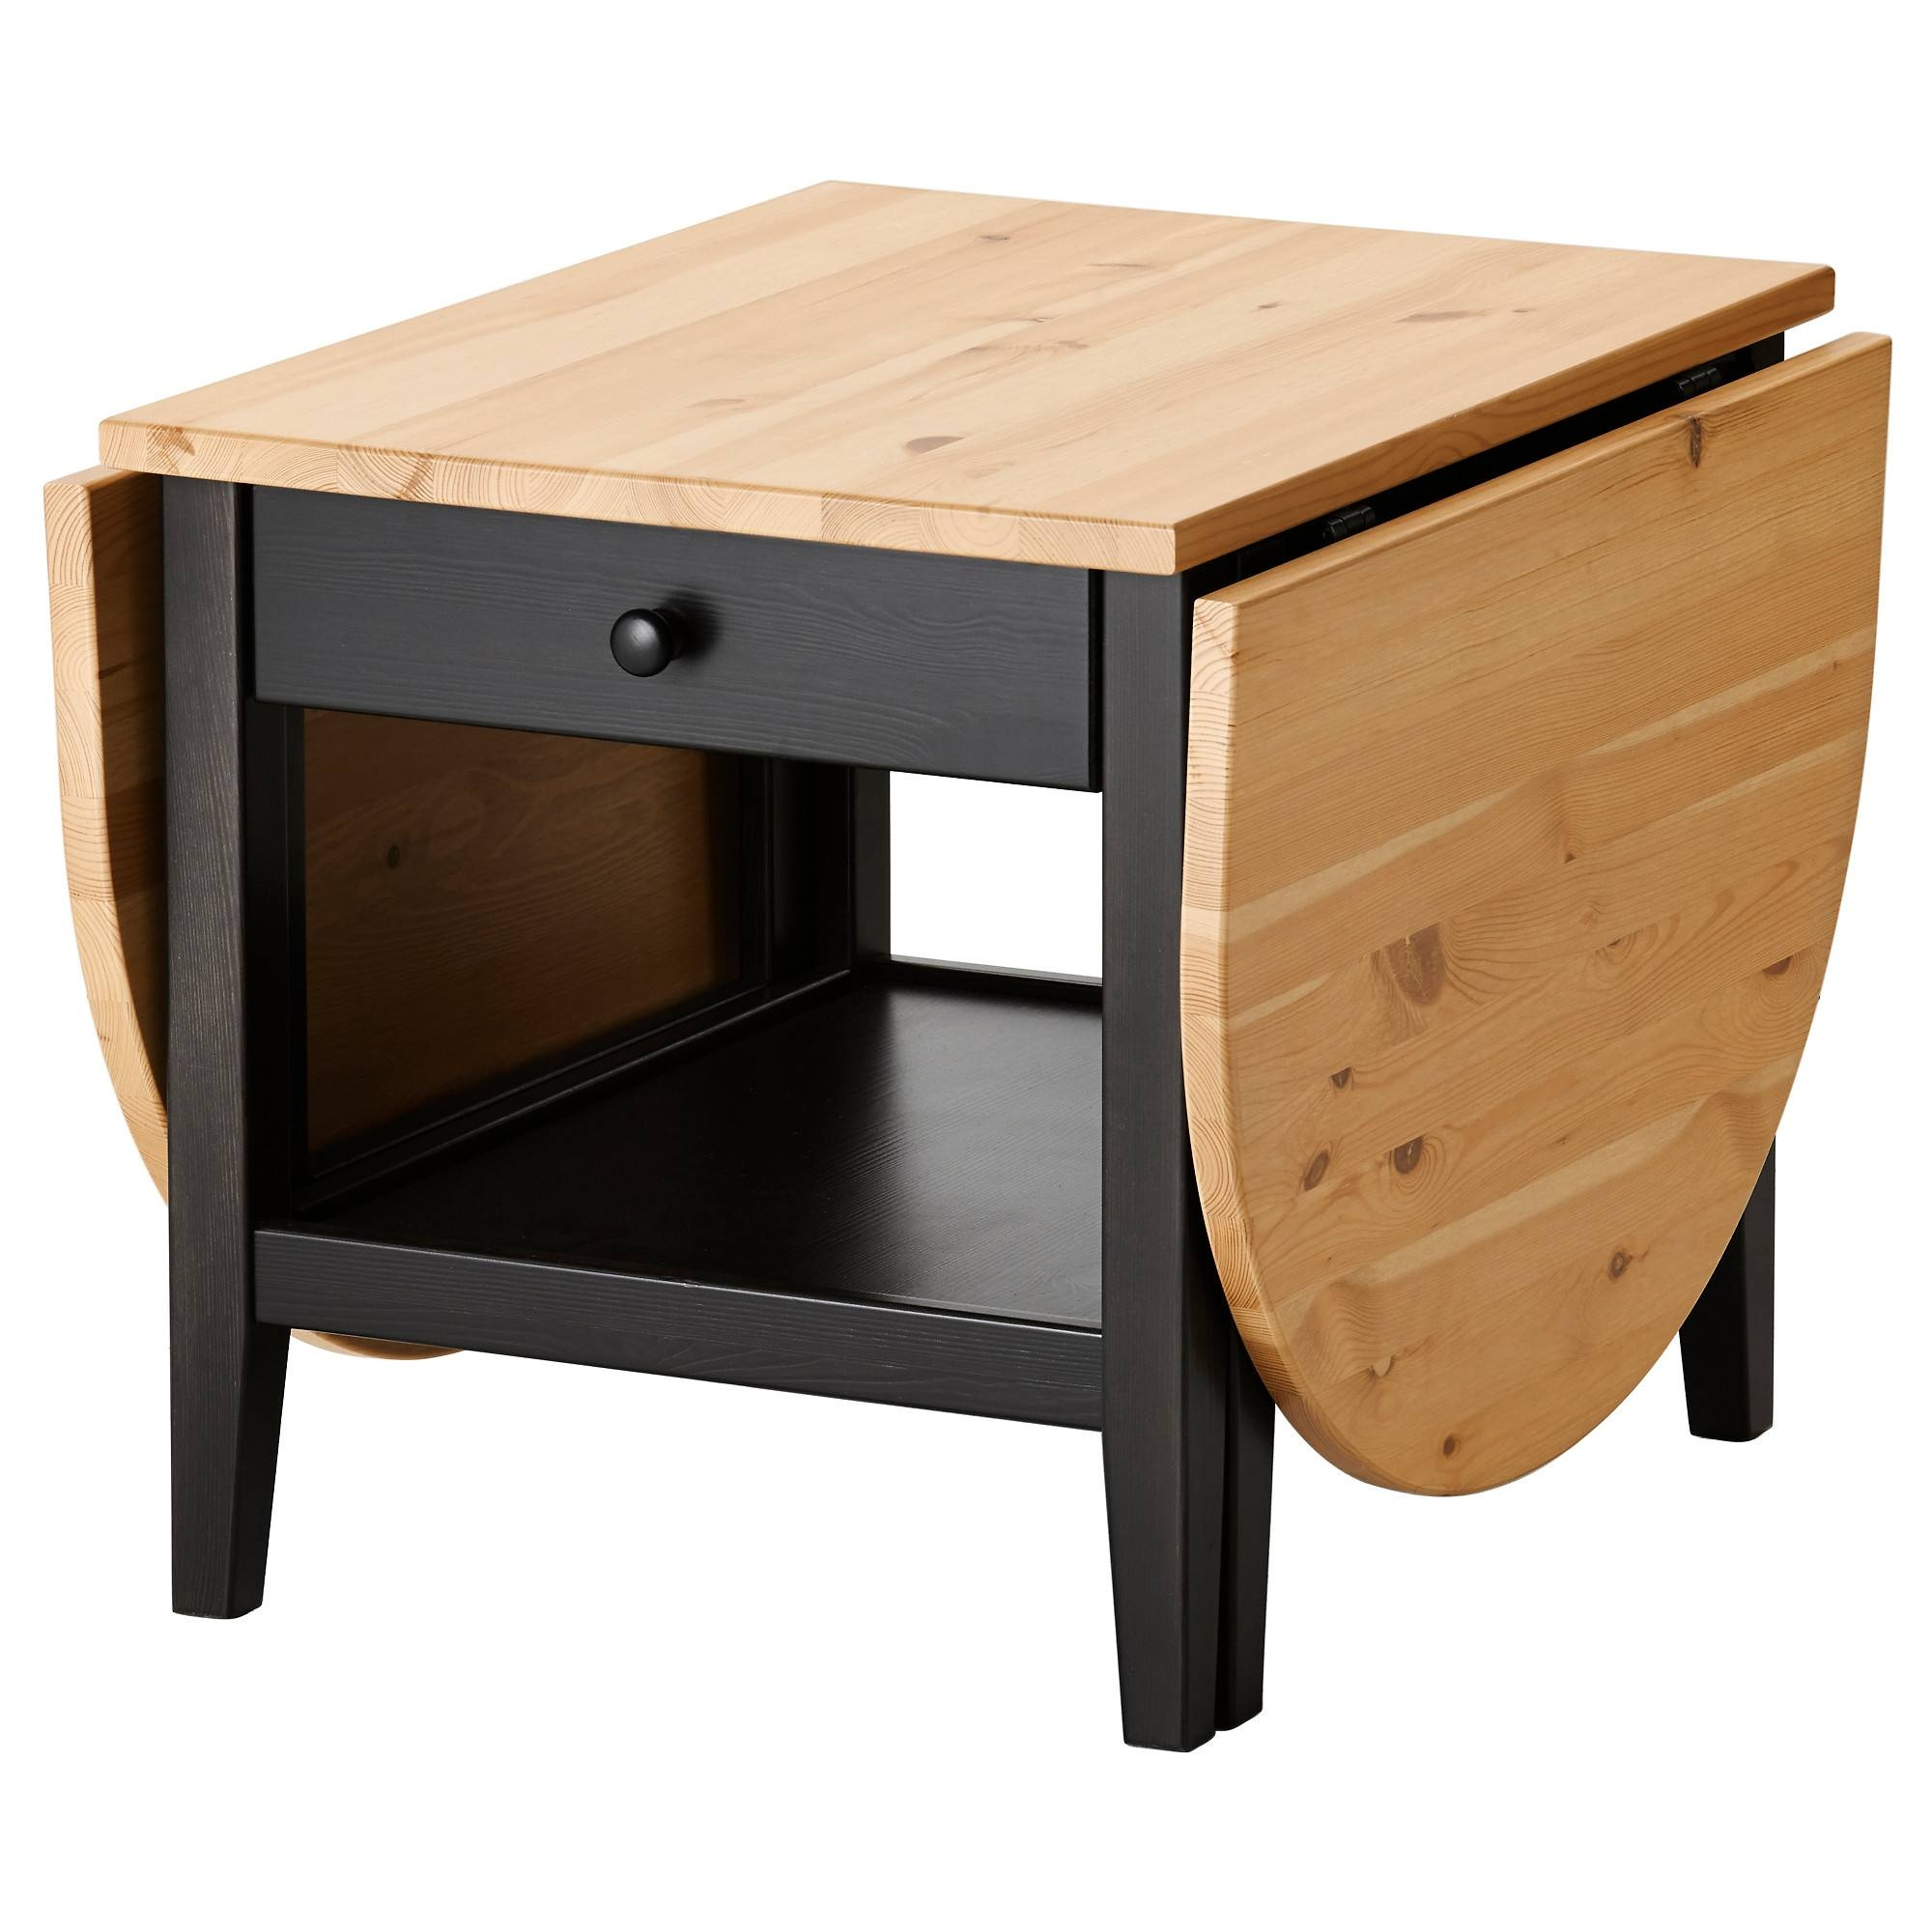 Coffee Tables & Console Tables – Ikea Inside Small Coffee Tables With Storage (View 14 of 30)